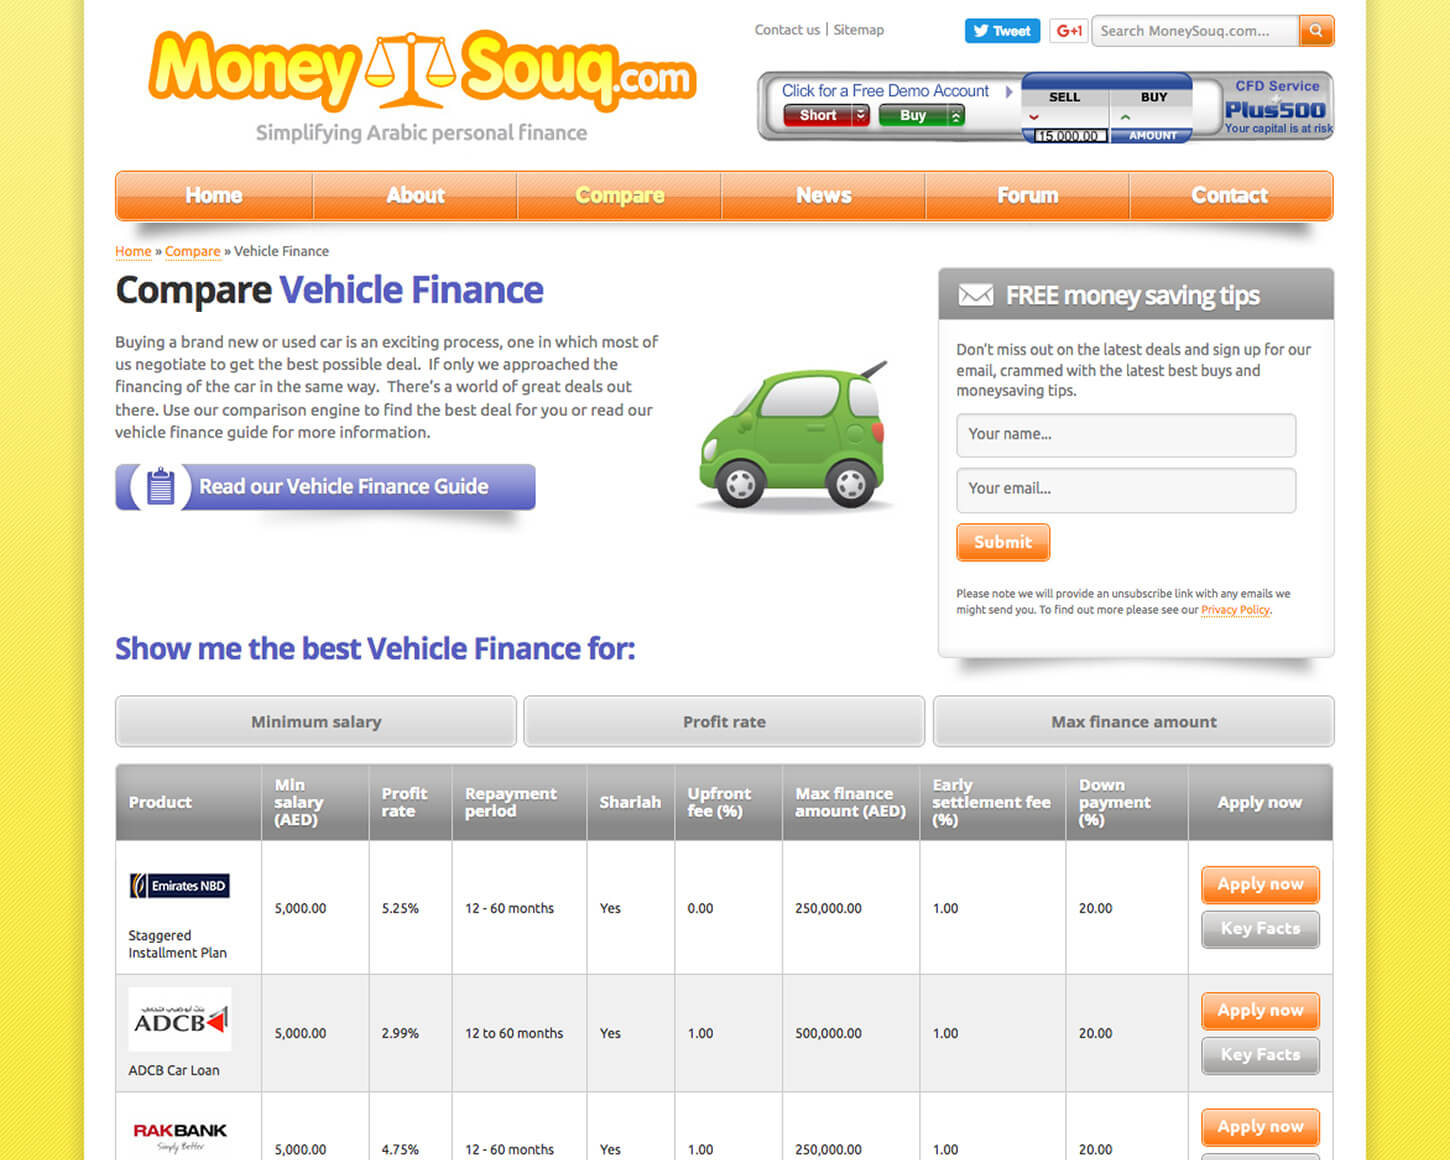 MoneySouq website